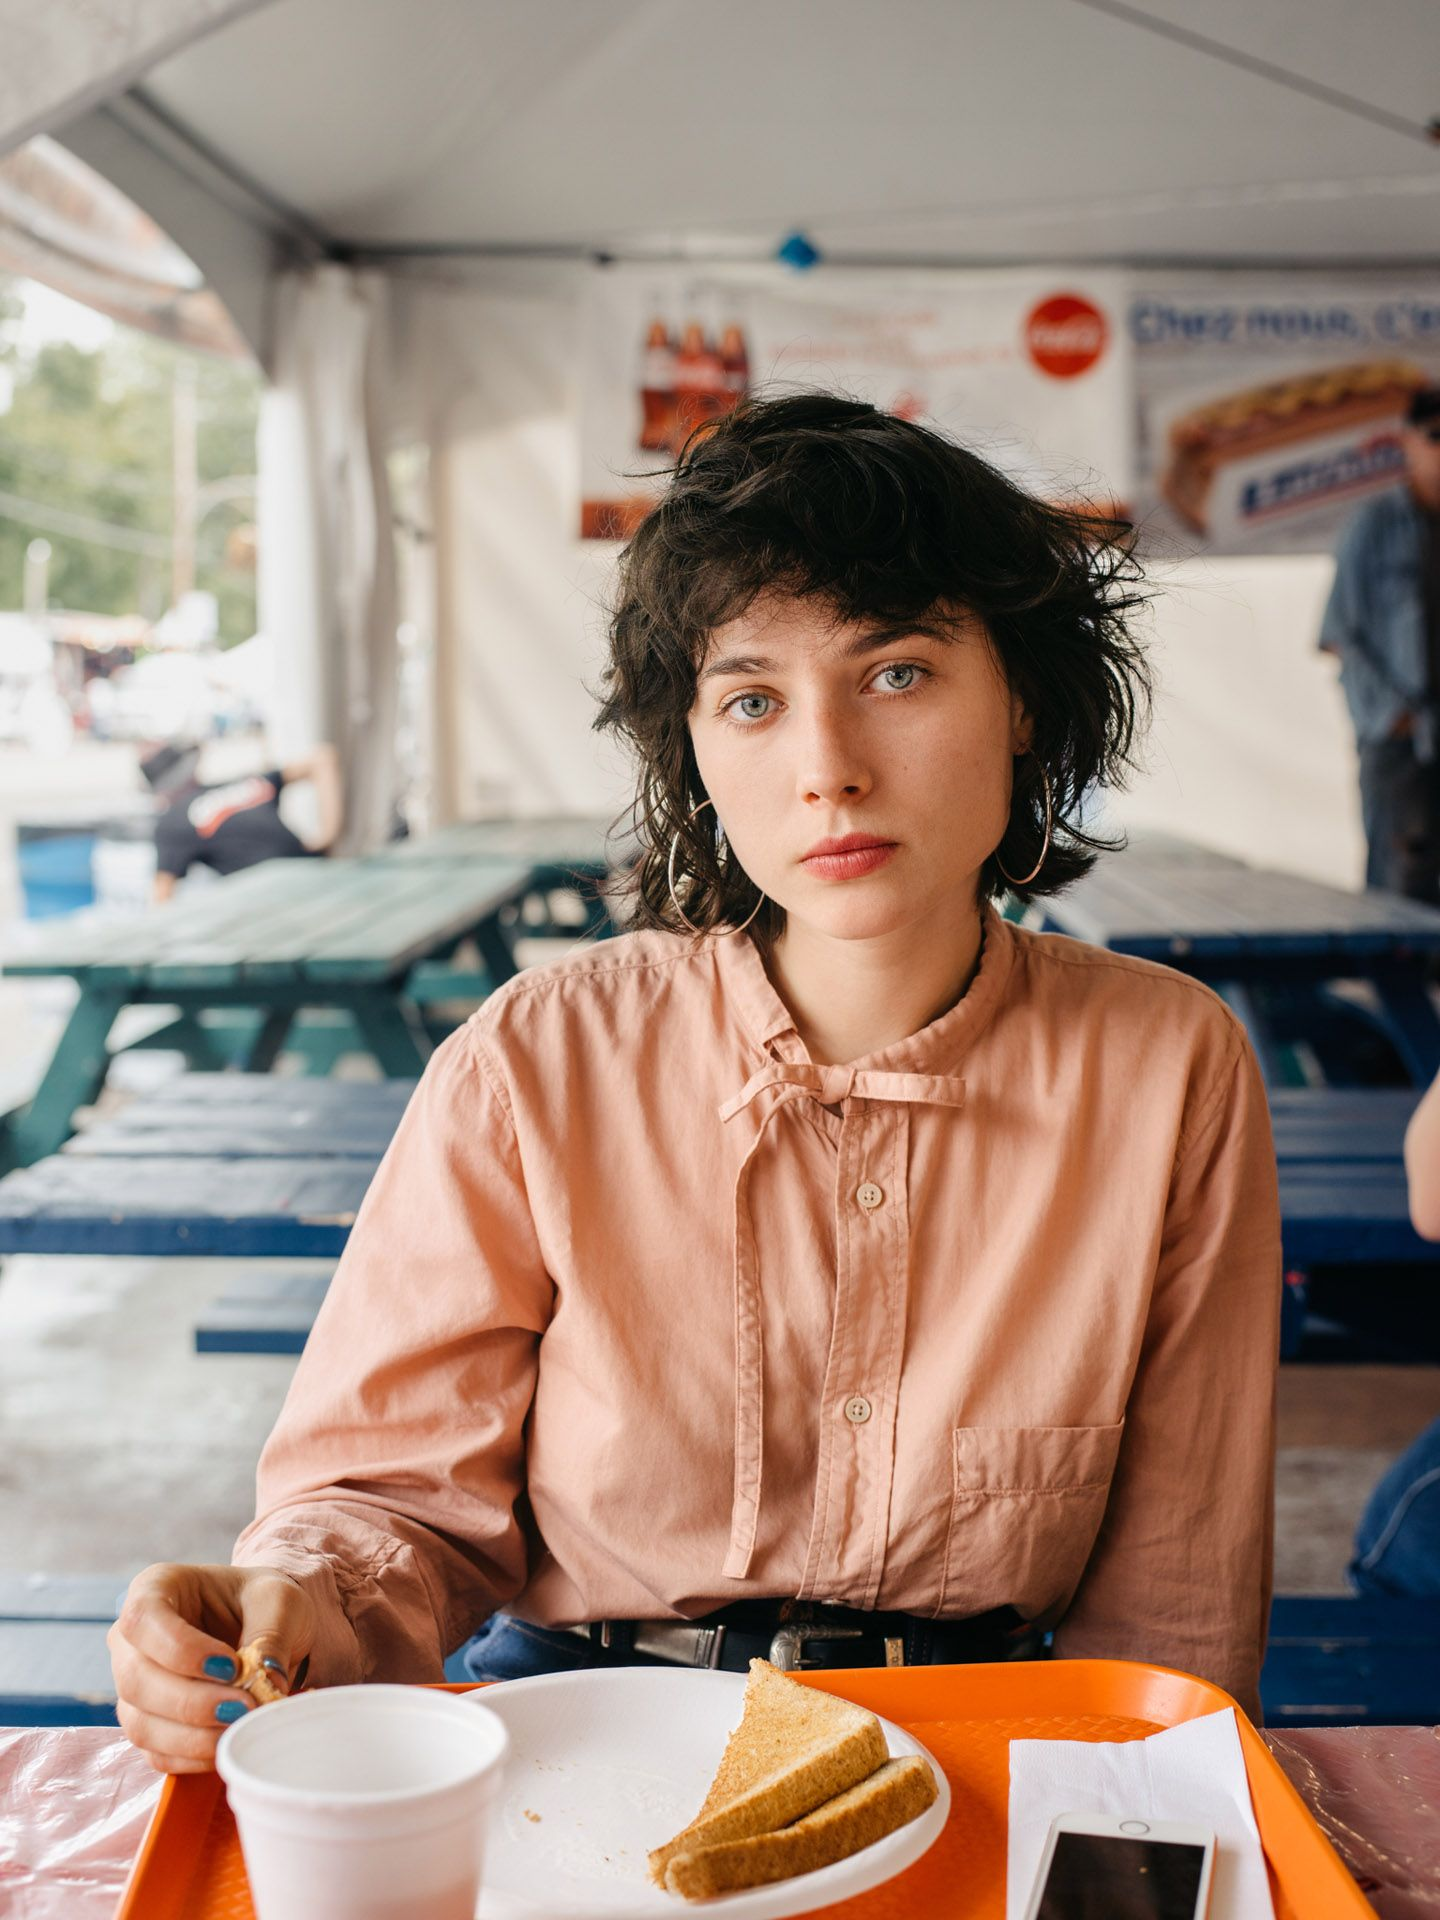 female model black hair blue eyes looking at camera wearing old pink shirt with blue jeans sitting in front of plate of toast by Alexi Hobbs in St-Tite for LArose Paris